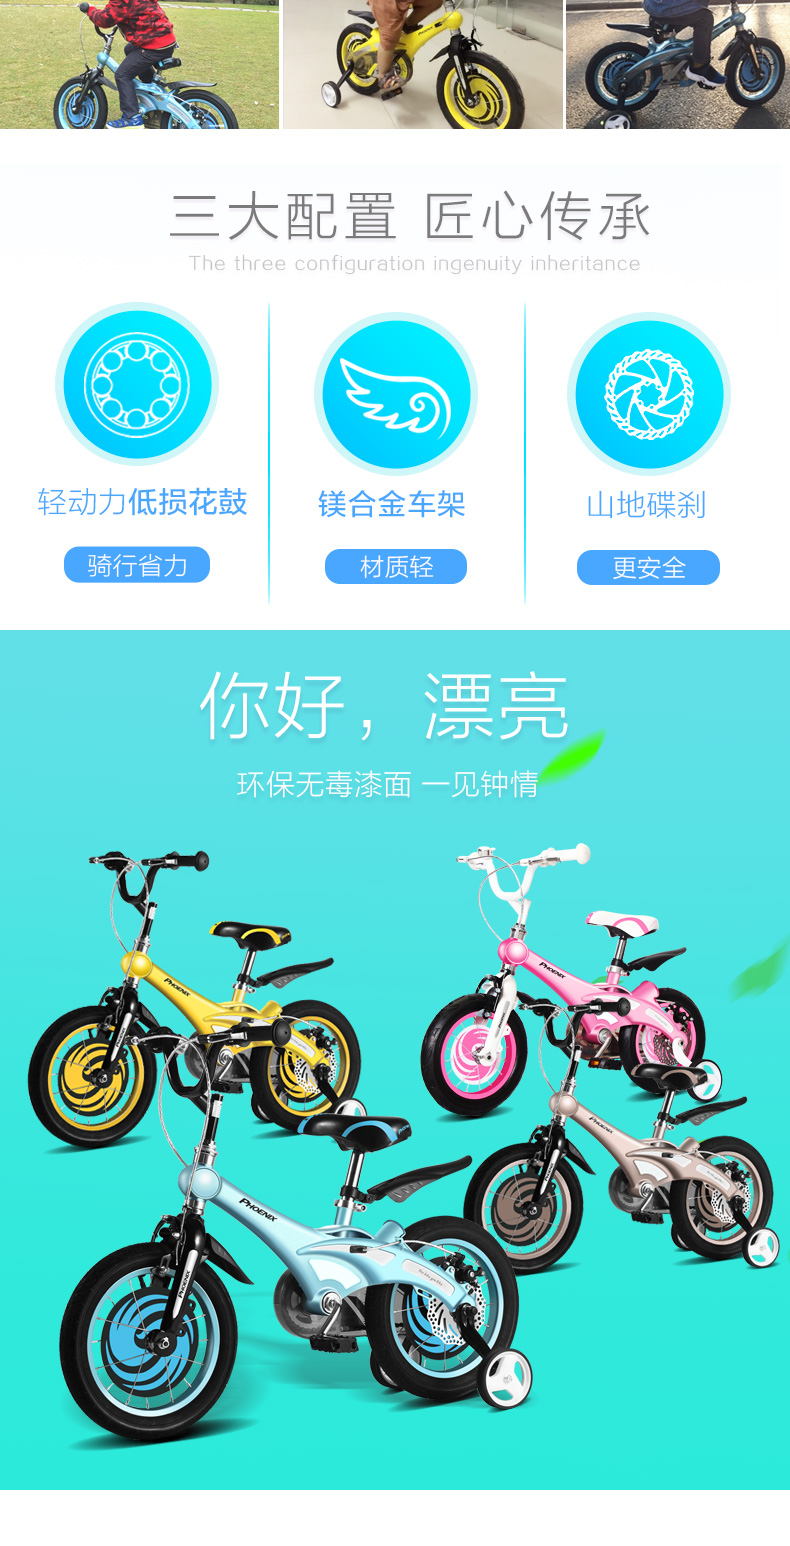 Sale New Brand Magnesium Alloy Frame Child Bike 12/14/16 inch Auxiliary Wheel Dual Disc Brake Bicycle Boy Girl Children buggy 3